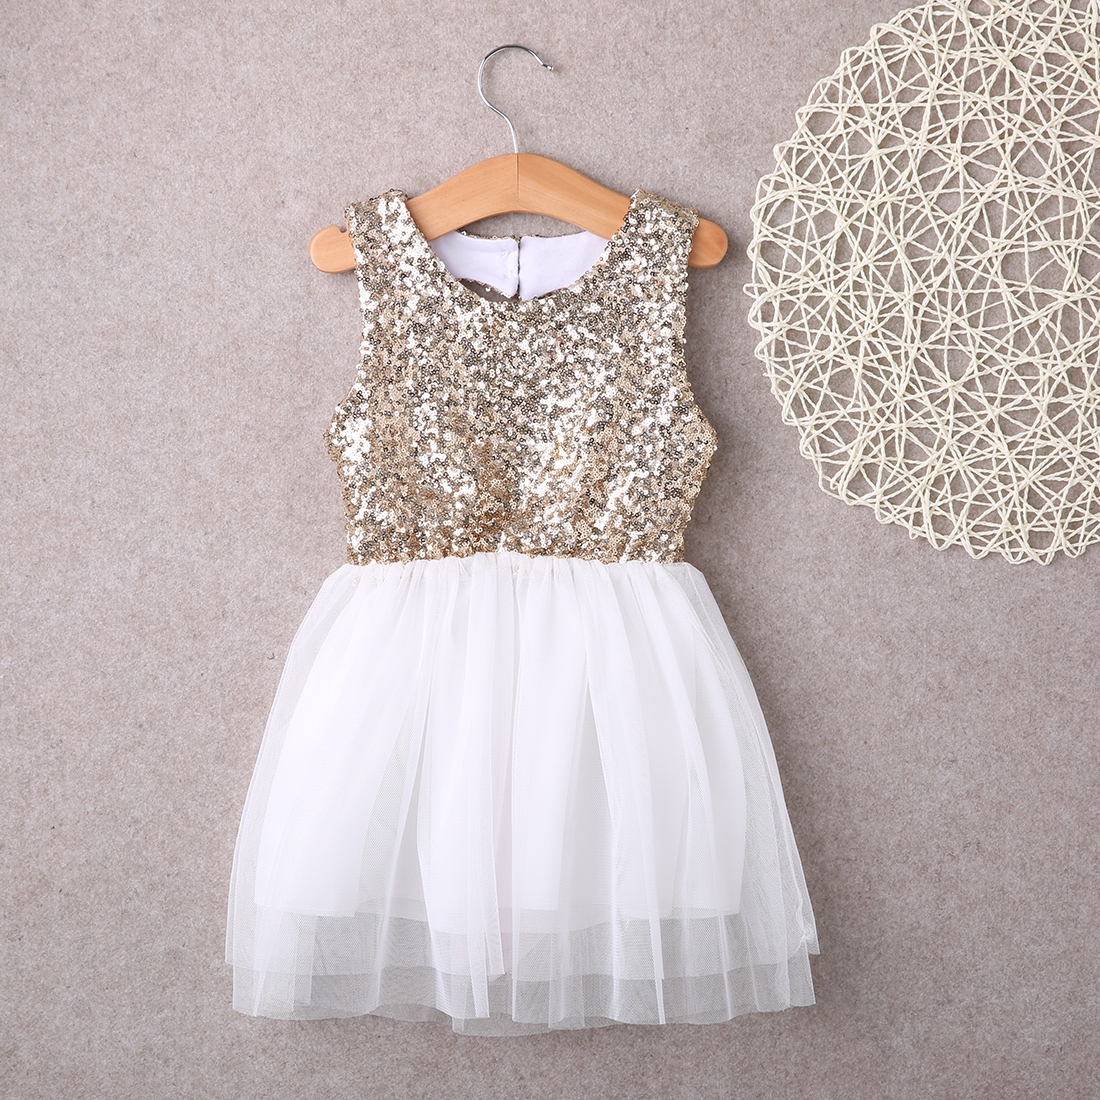 summer dress 2017 wholesale sequins dress baby flower girl dress party gown dresses backless sleeveless sundress